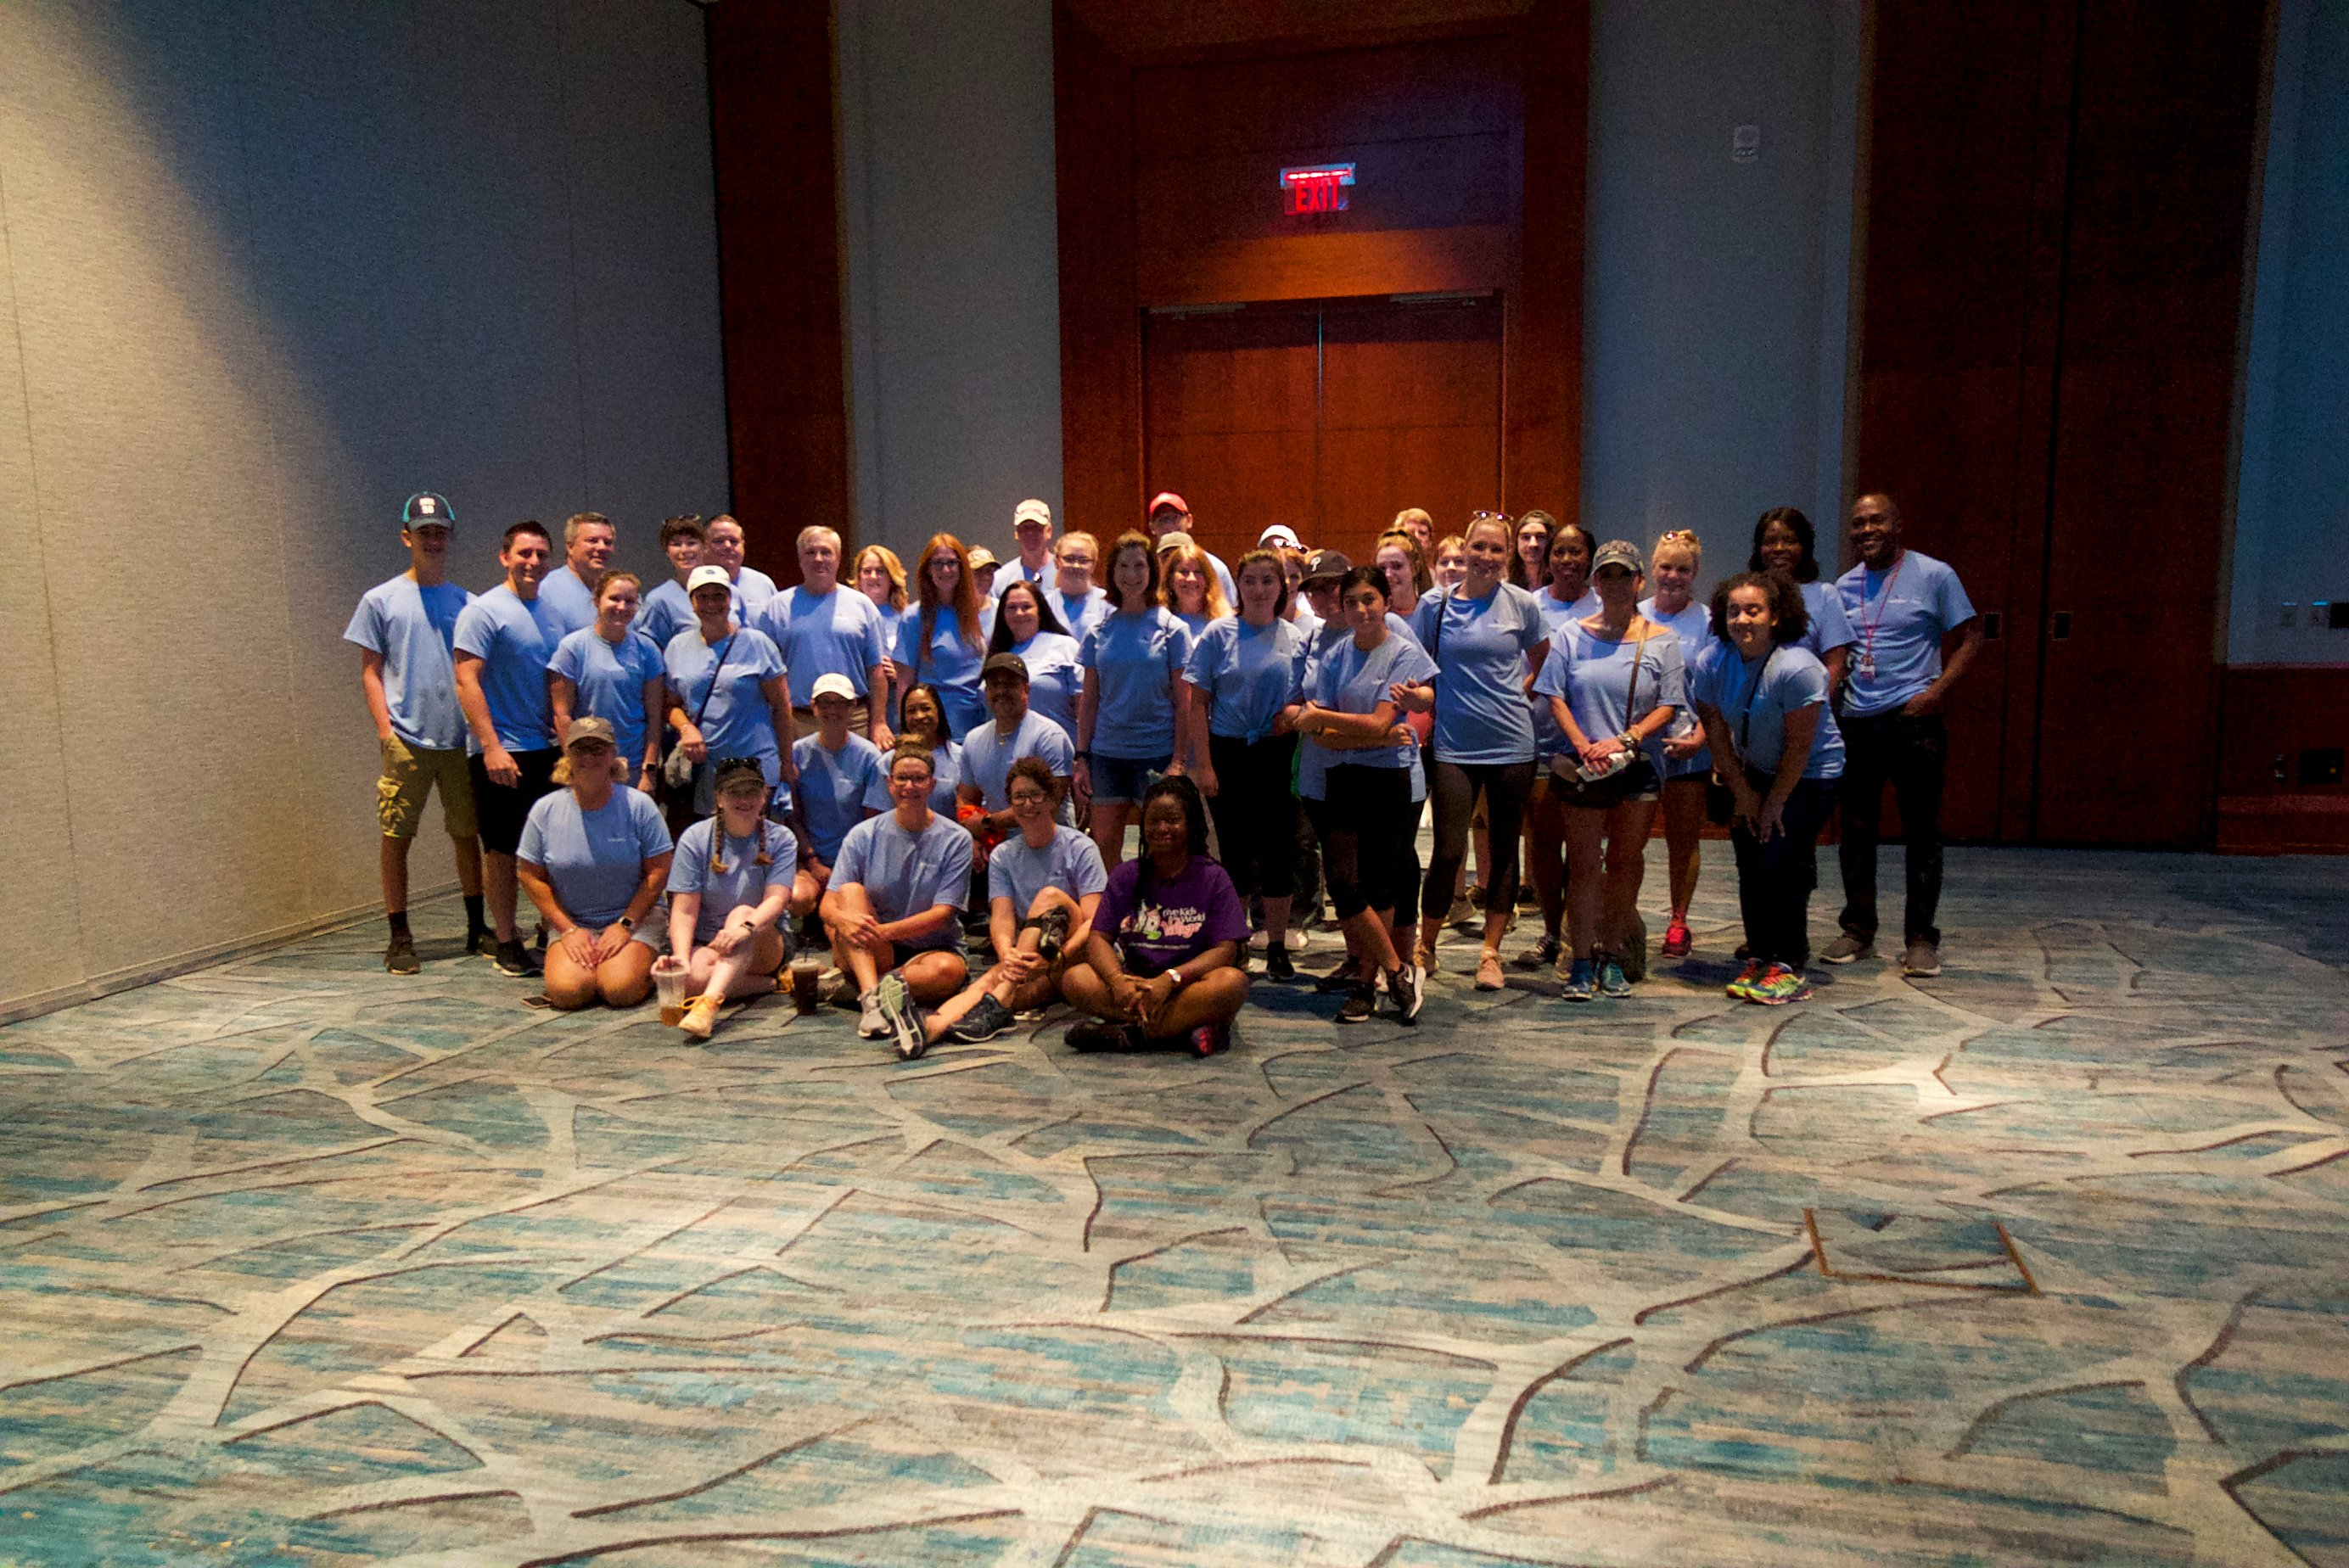 GB Employees who volunteered at this year's Give Kids the World Event